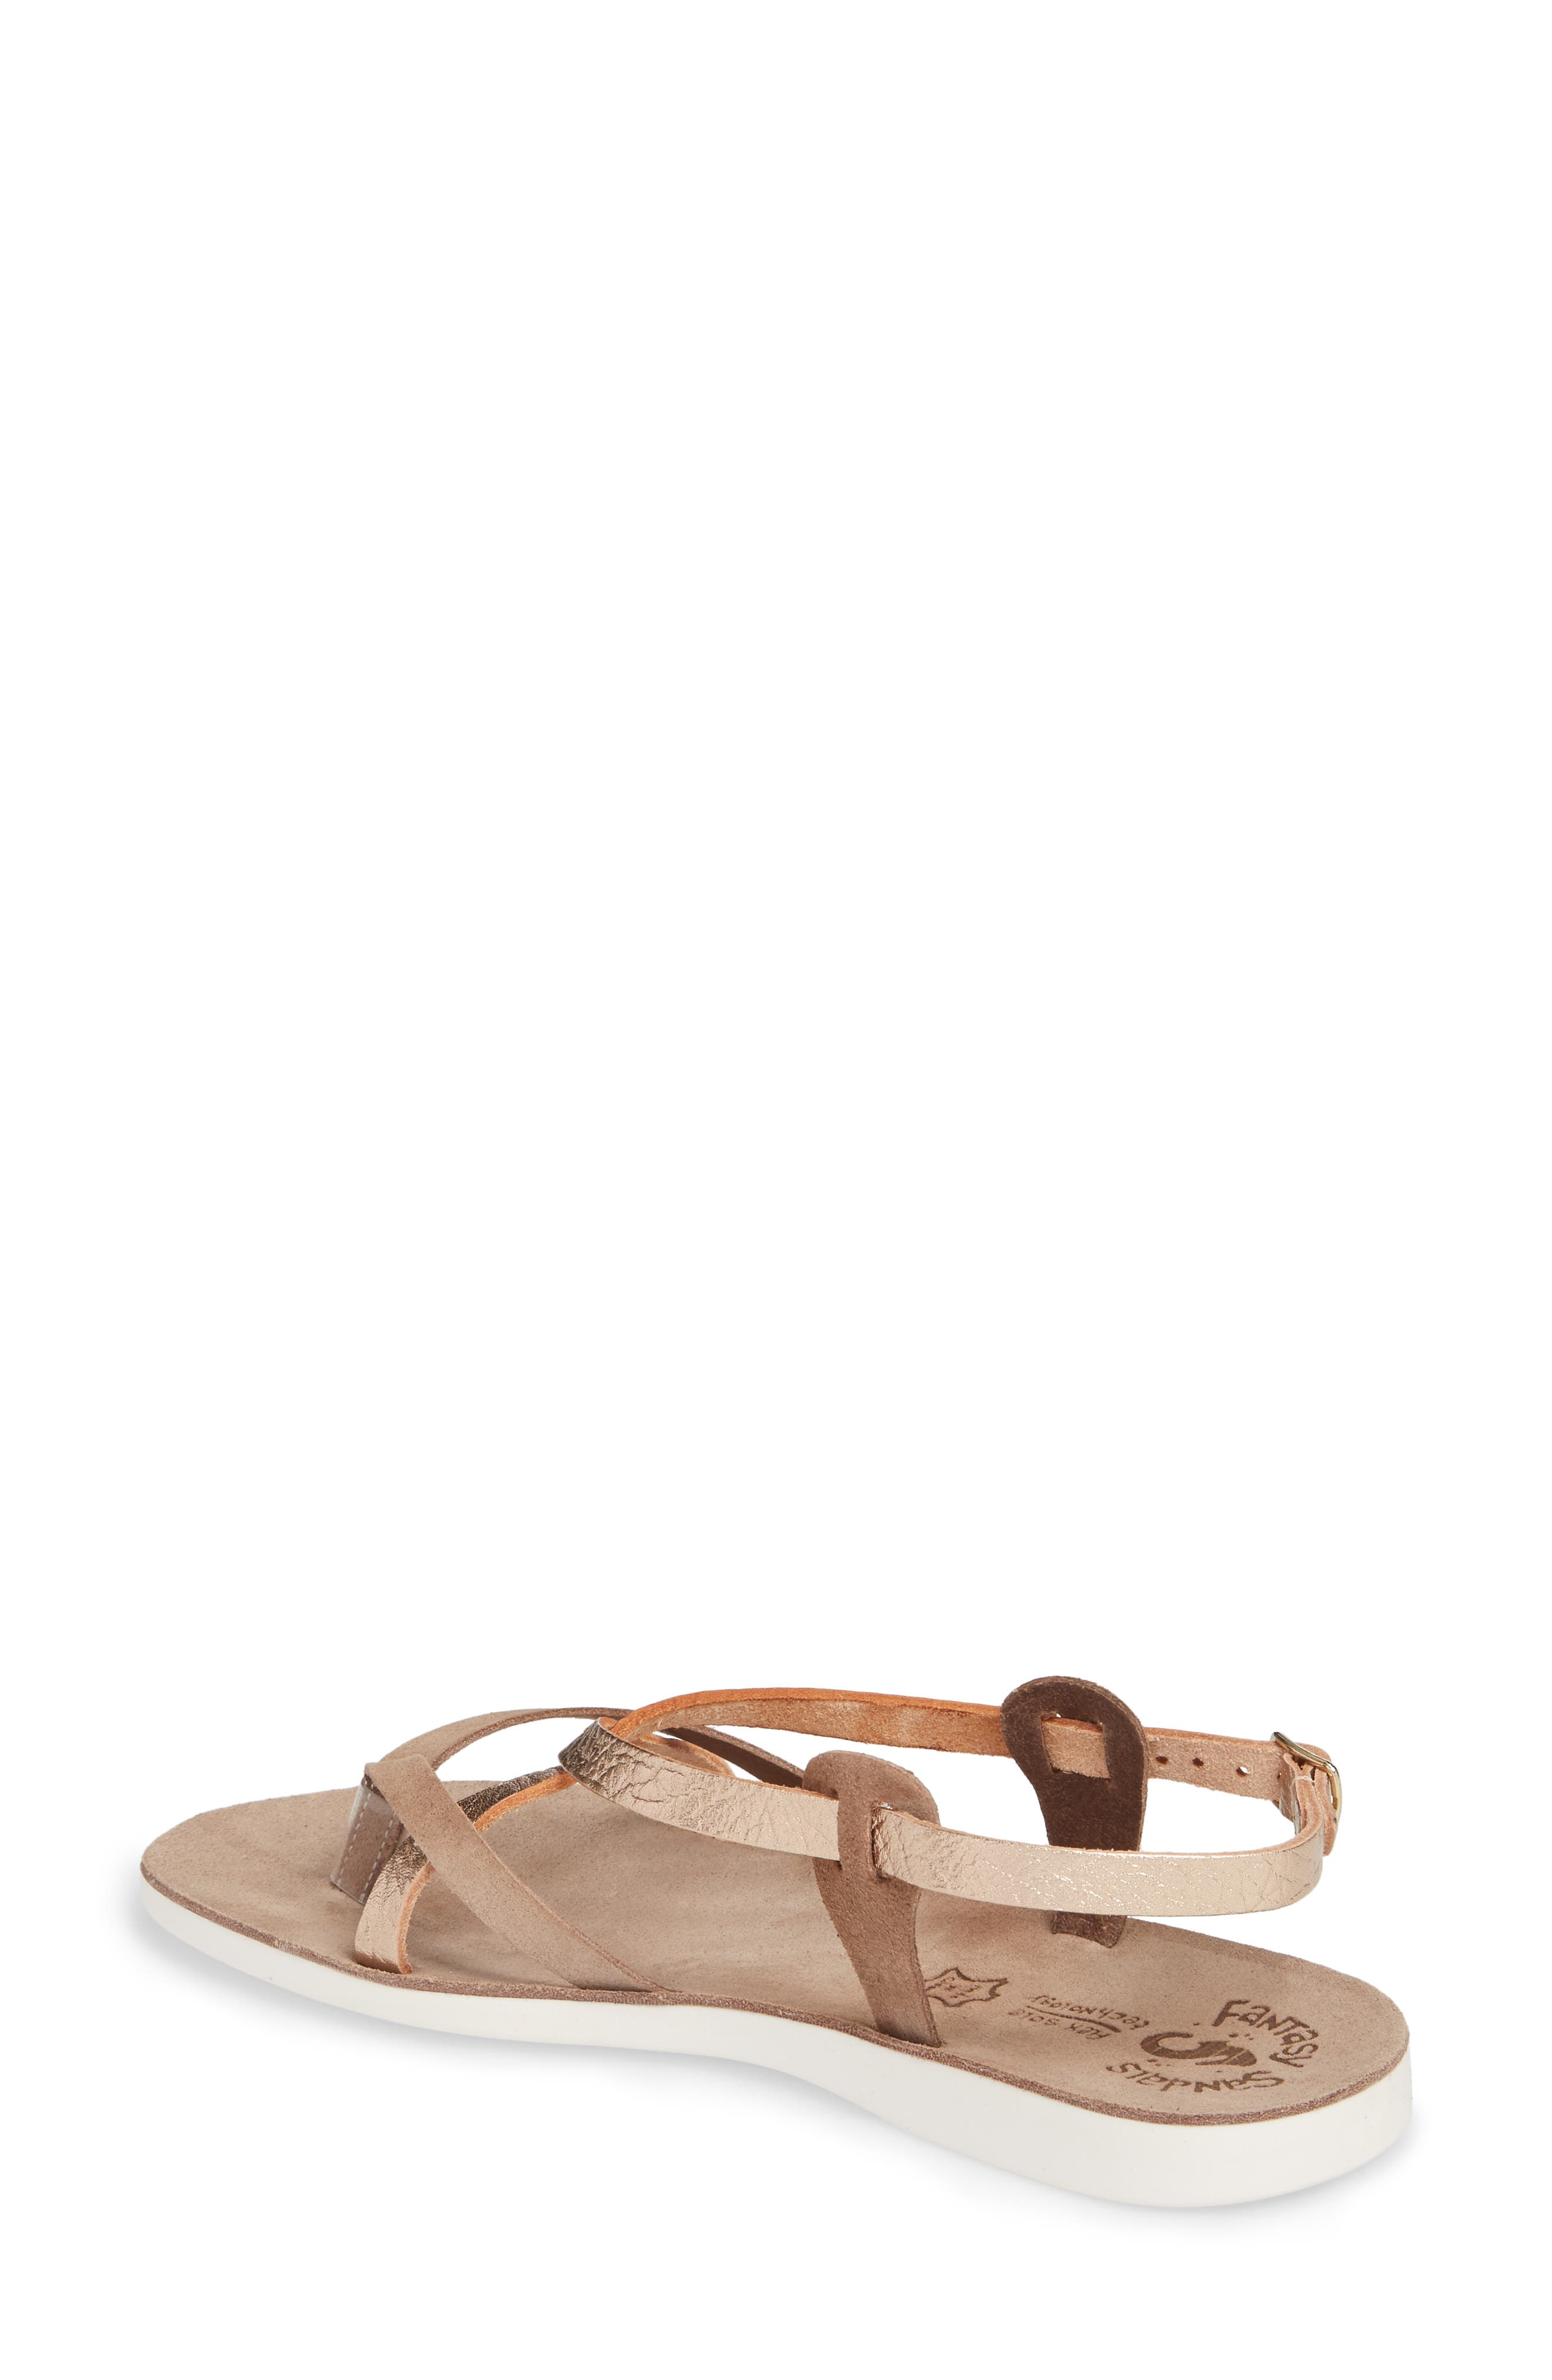 Anelia Fantasy Sandal,                             Alternate thumbnail 2, color,                             Coffee Volcano Leather